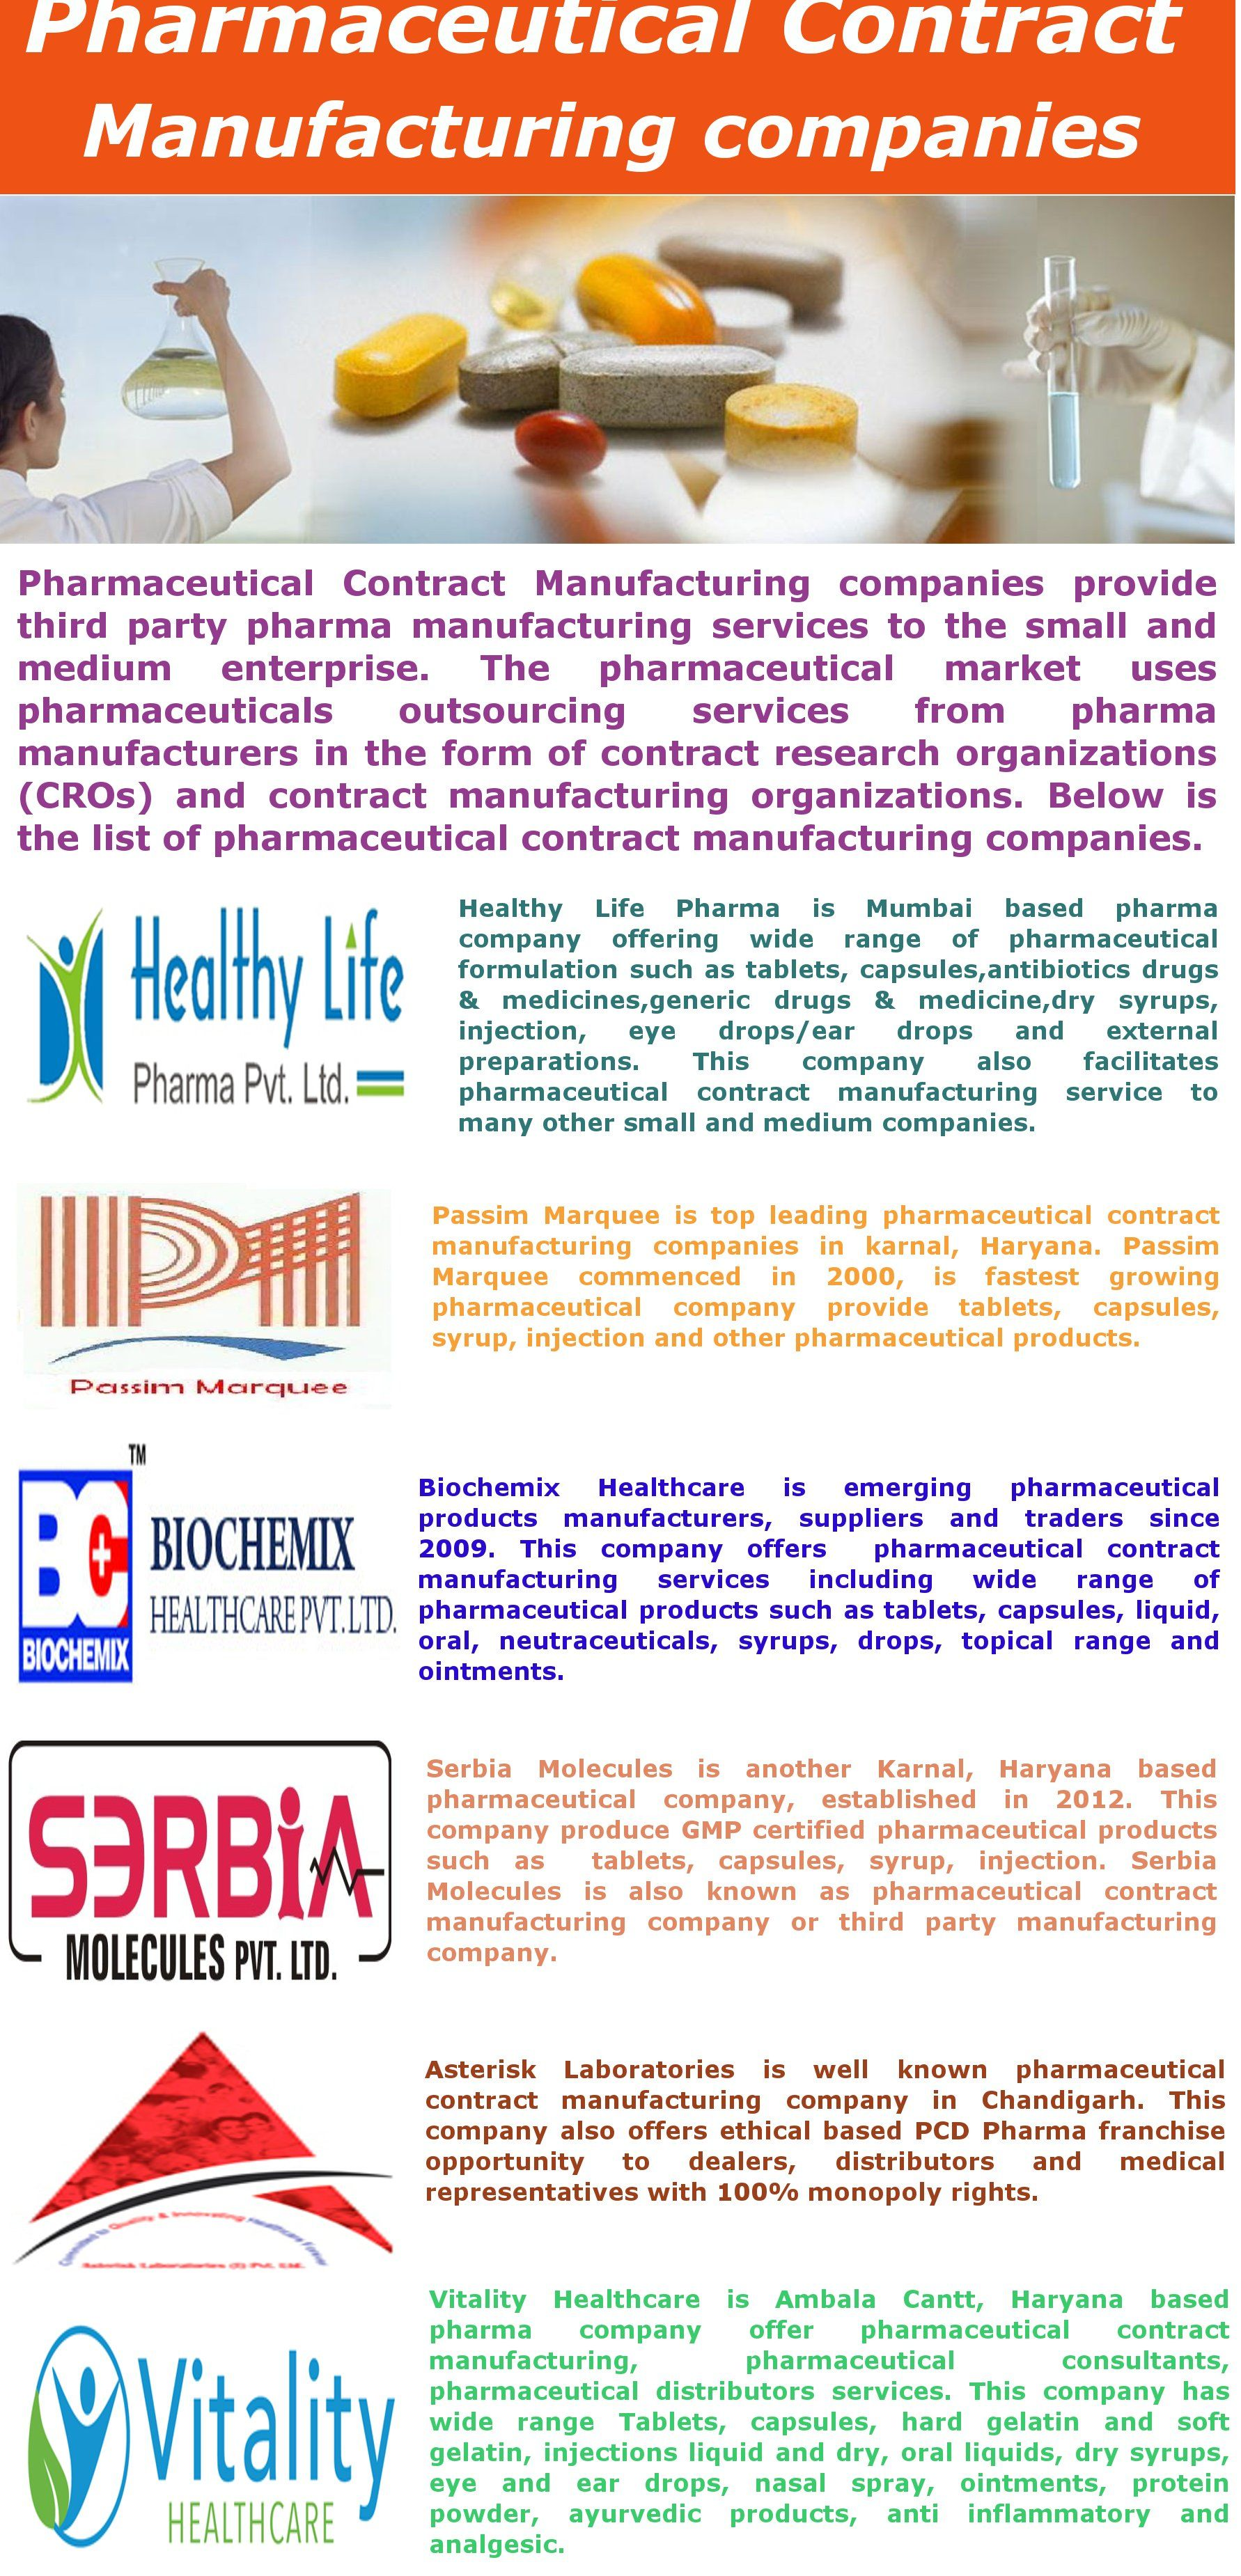 Visit here for Top 6 Leading Pharmaceutical Contract Manufacturing